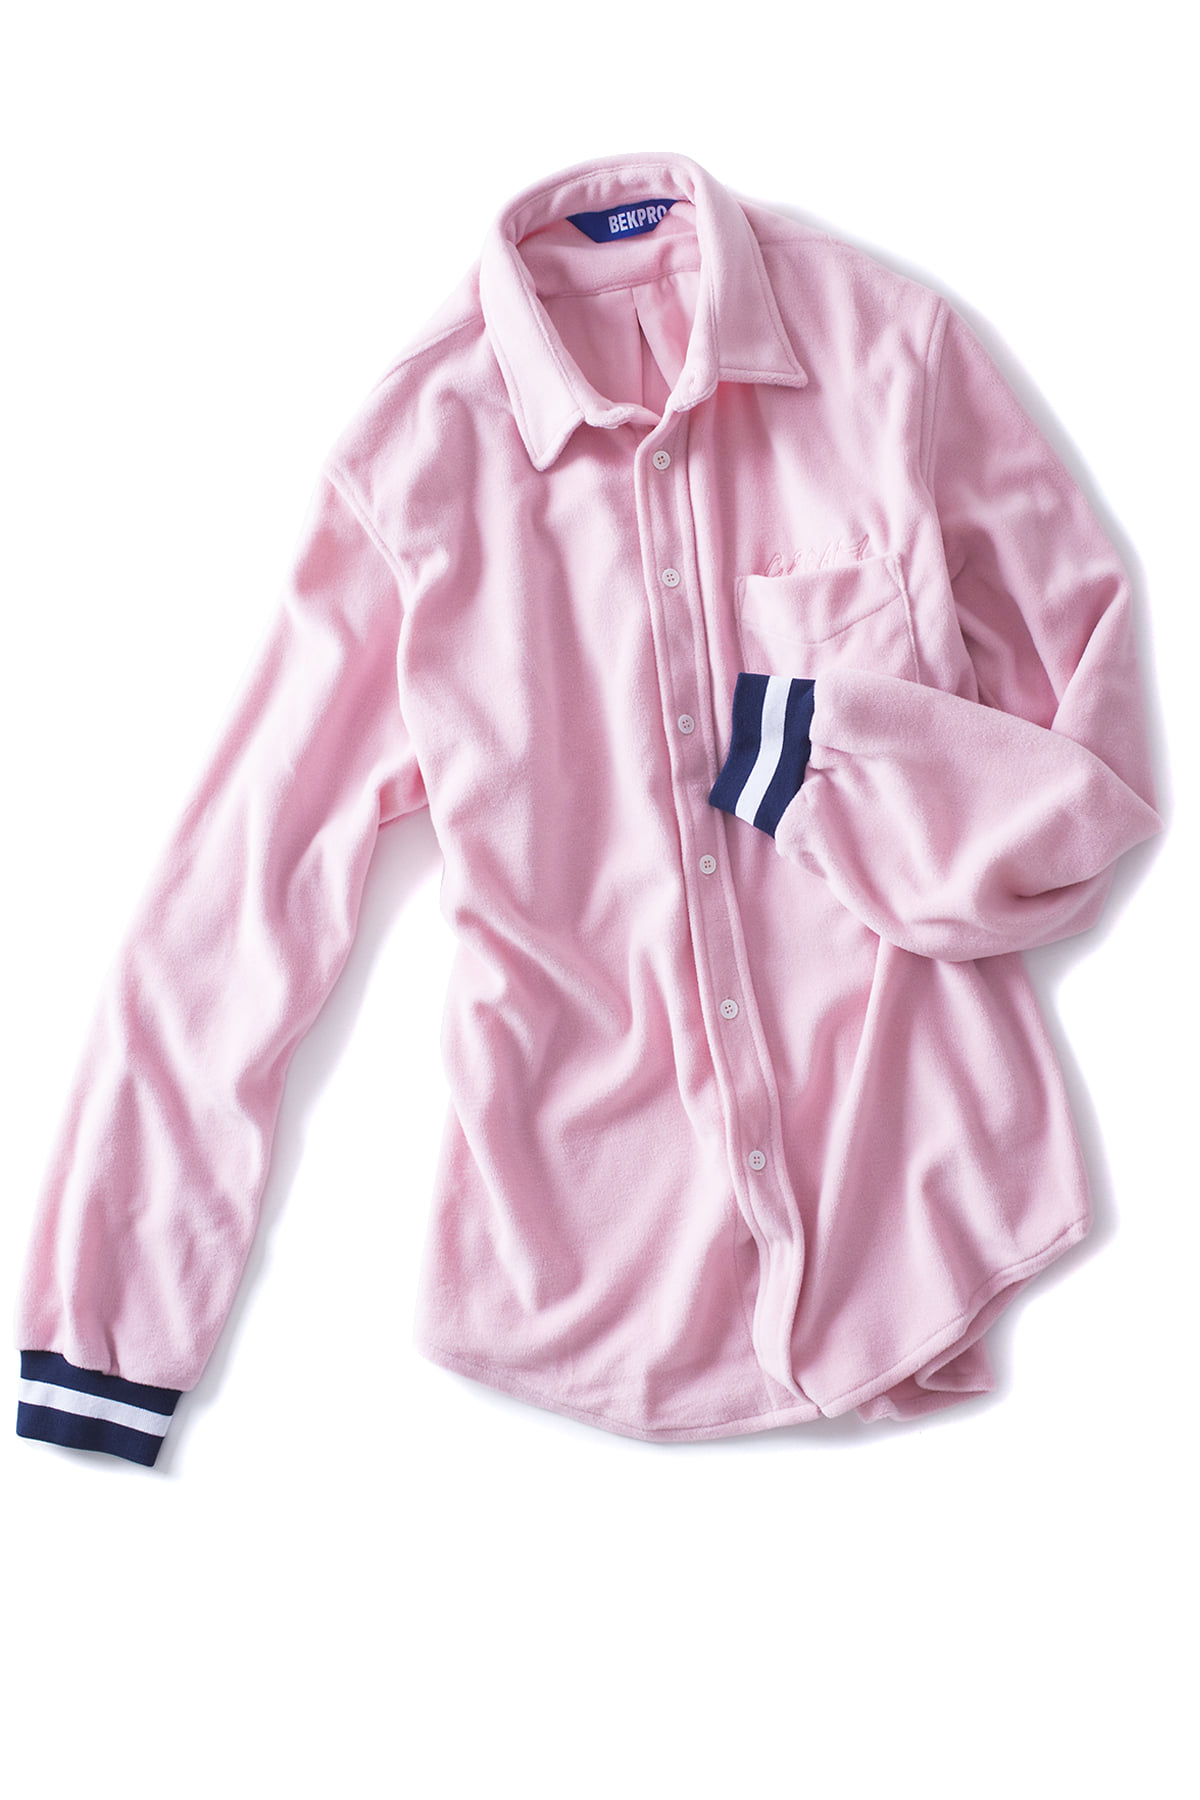 BEKPRO : L/S FLEECE SHIRT (Pink)